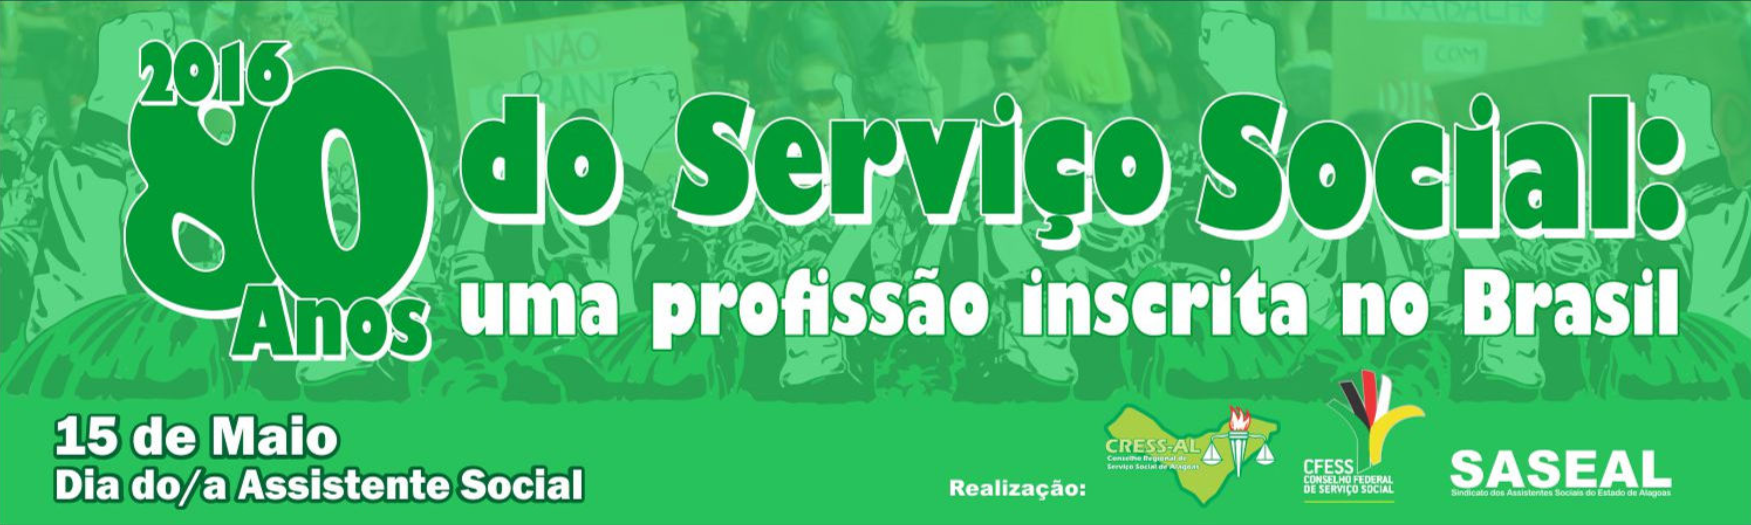 http://www.cress16.org.br/admin/wp-content/uploads/2016/05/evento_maio20162.png